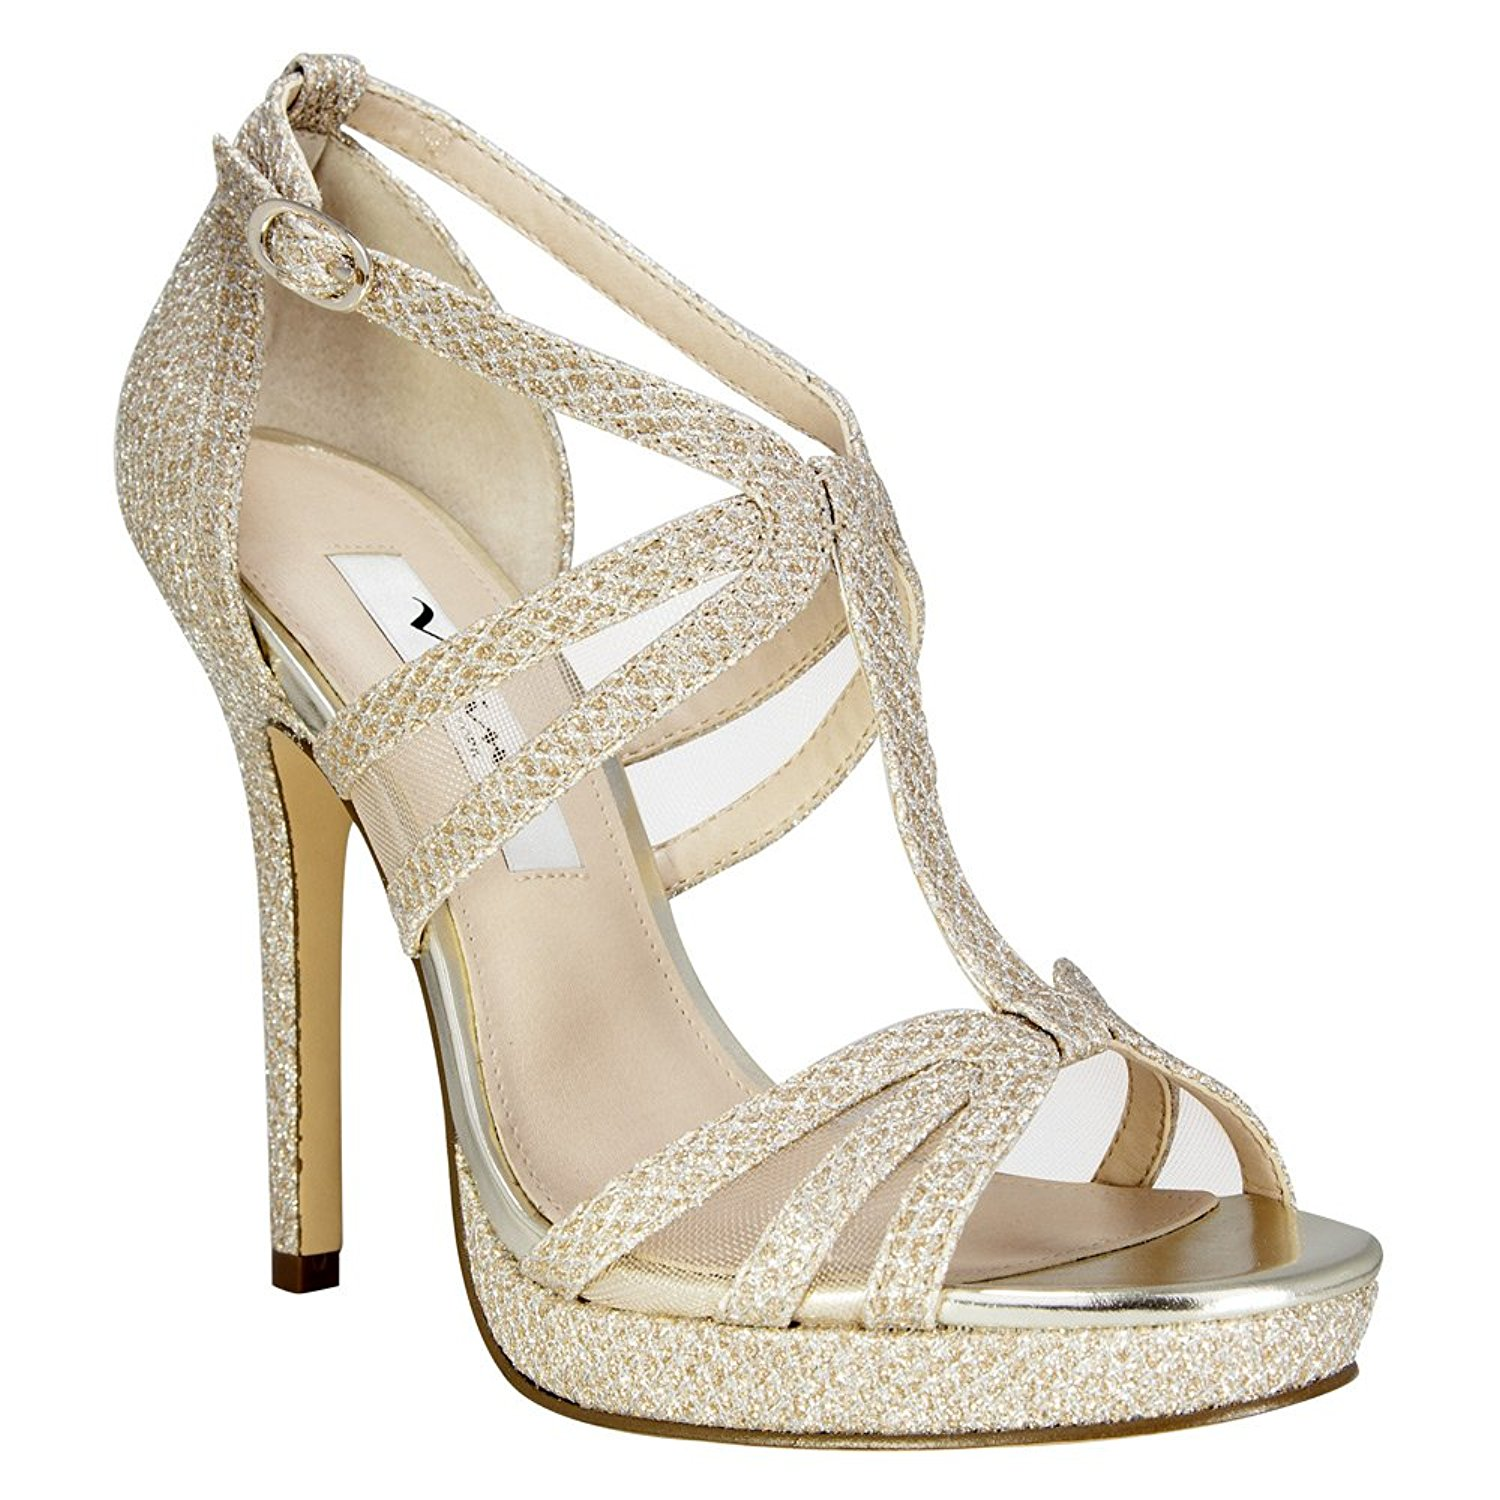 Nina Womens Cyprian Open Toe Ankle Strap Dorsay Pumps Ivory Satin Size 11.0 L